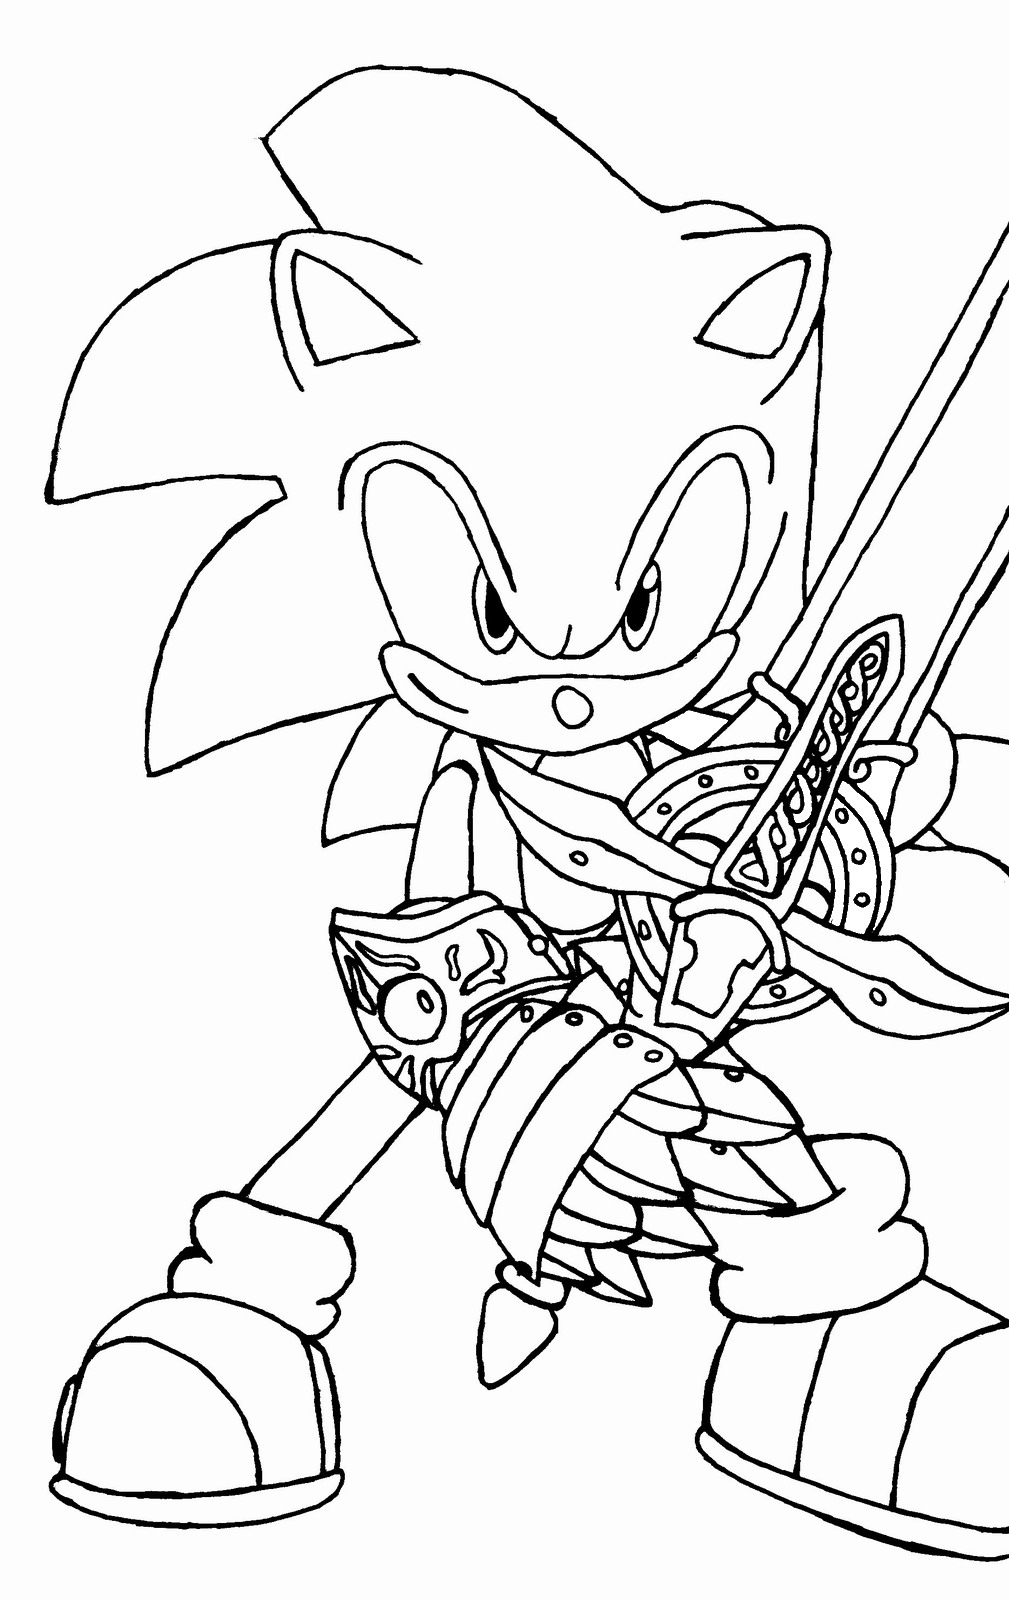 sonic the hedgehog coloring pages sonic coloring pages team colors pages sonic the coloring hedgehog